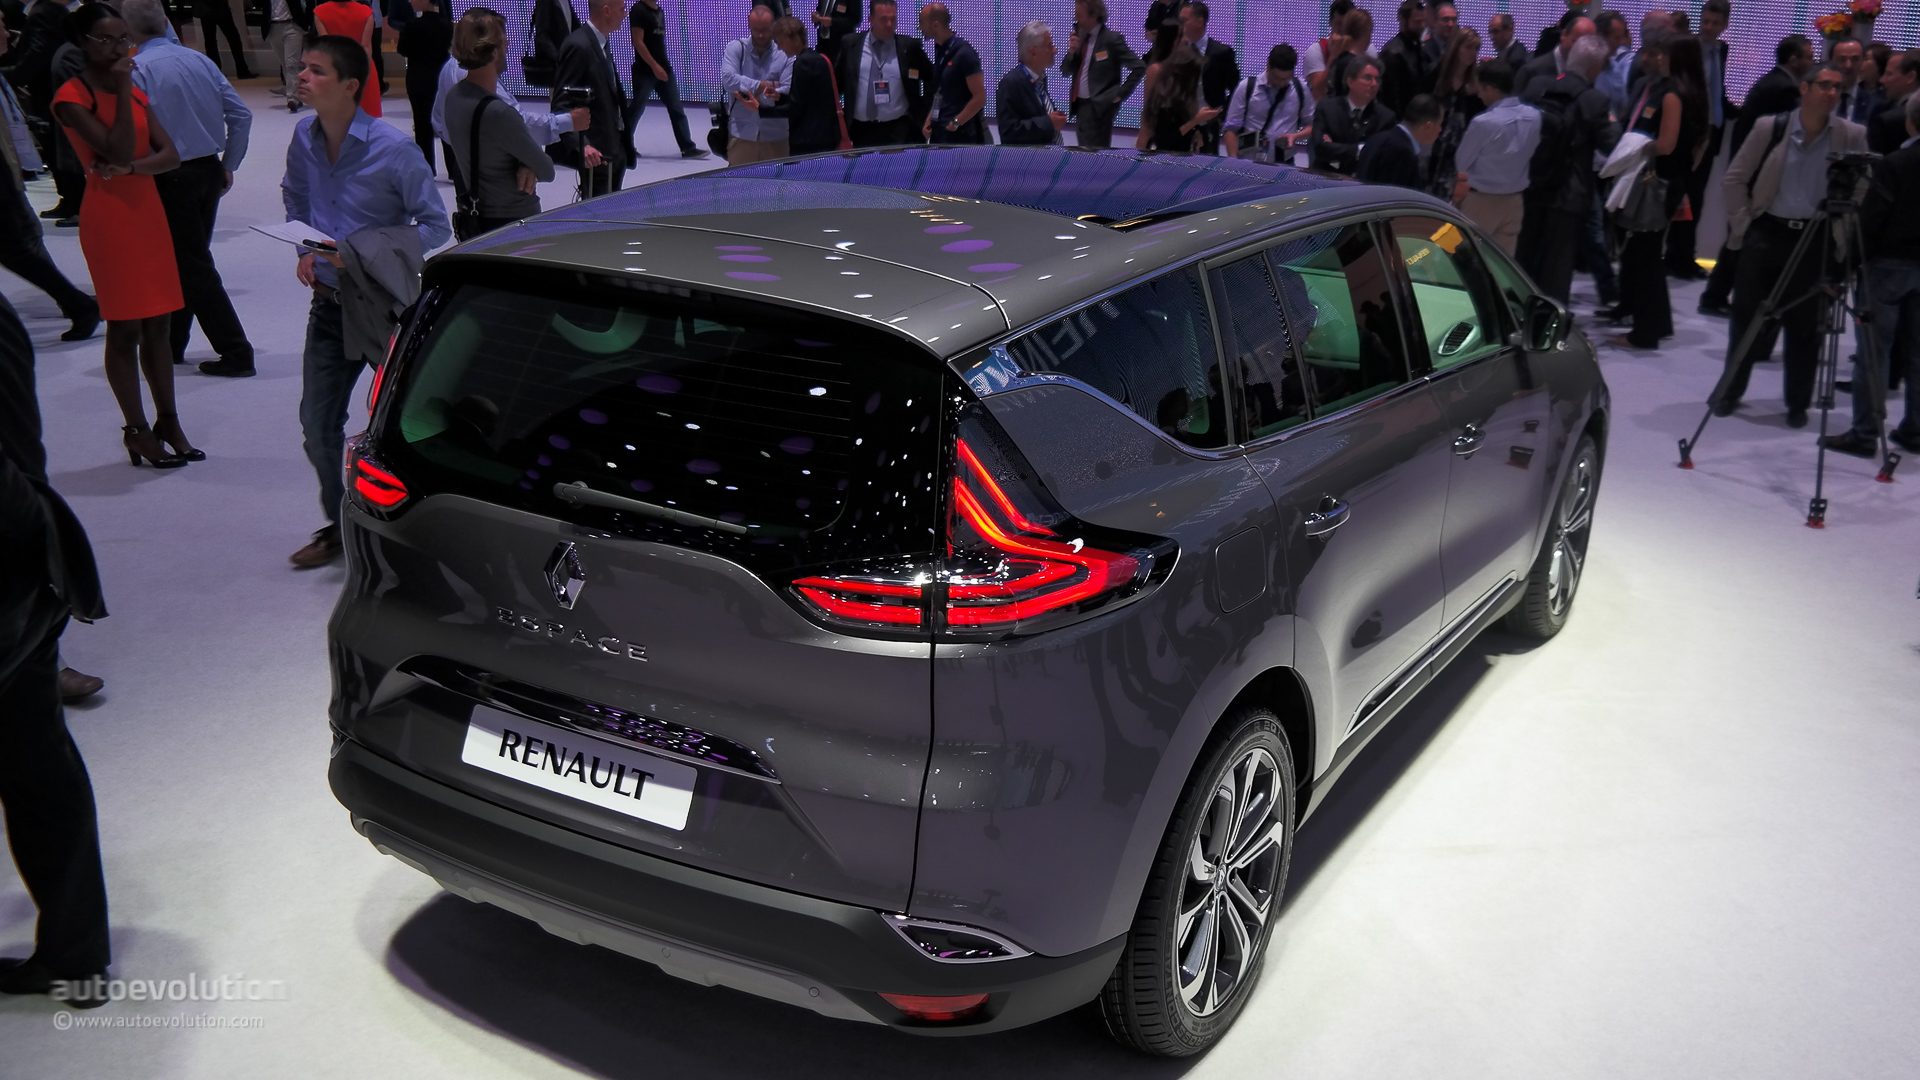 2015 Renault Espace Configurator Launched Prices Start At 34 200